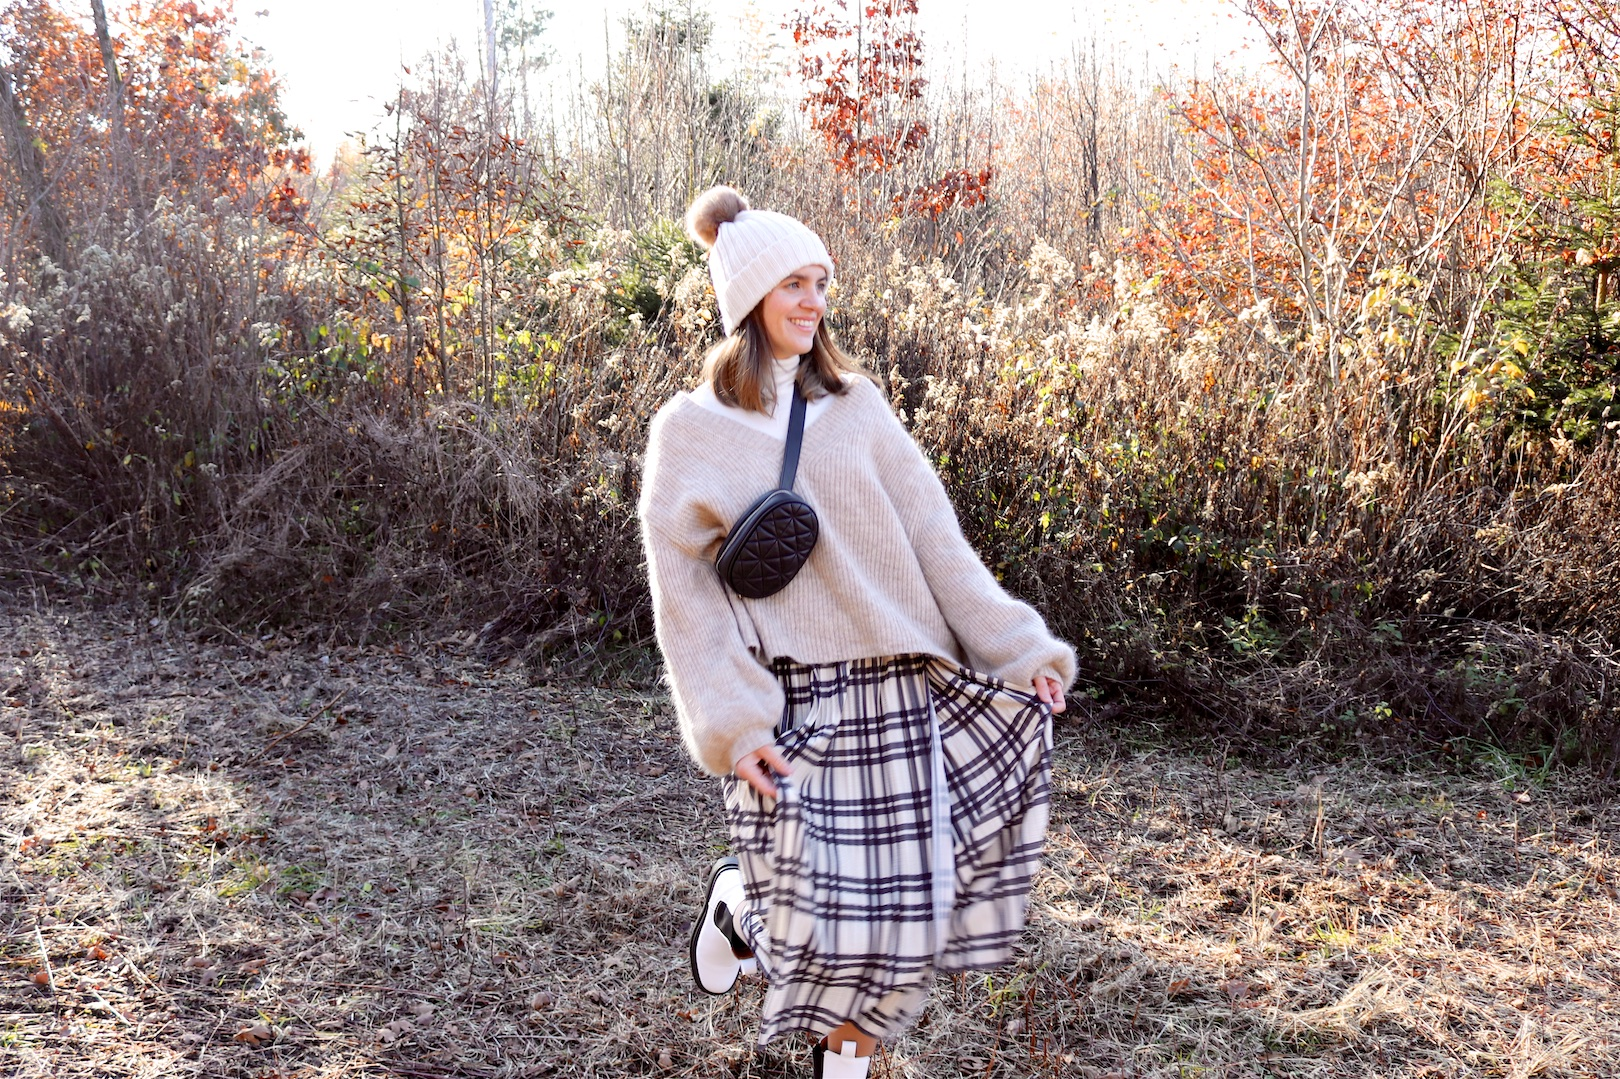 Forest Walk. Fashion and Style Blog Girl from Heartfelt Hunt. Girl with blonde hair wearing a pompom beanie, white turtleneck, chunky sweater, pleated skirt, belt bag and white boots.